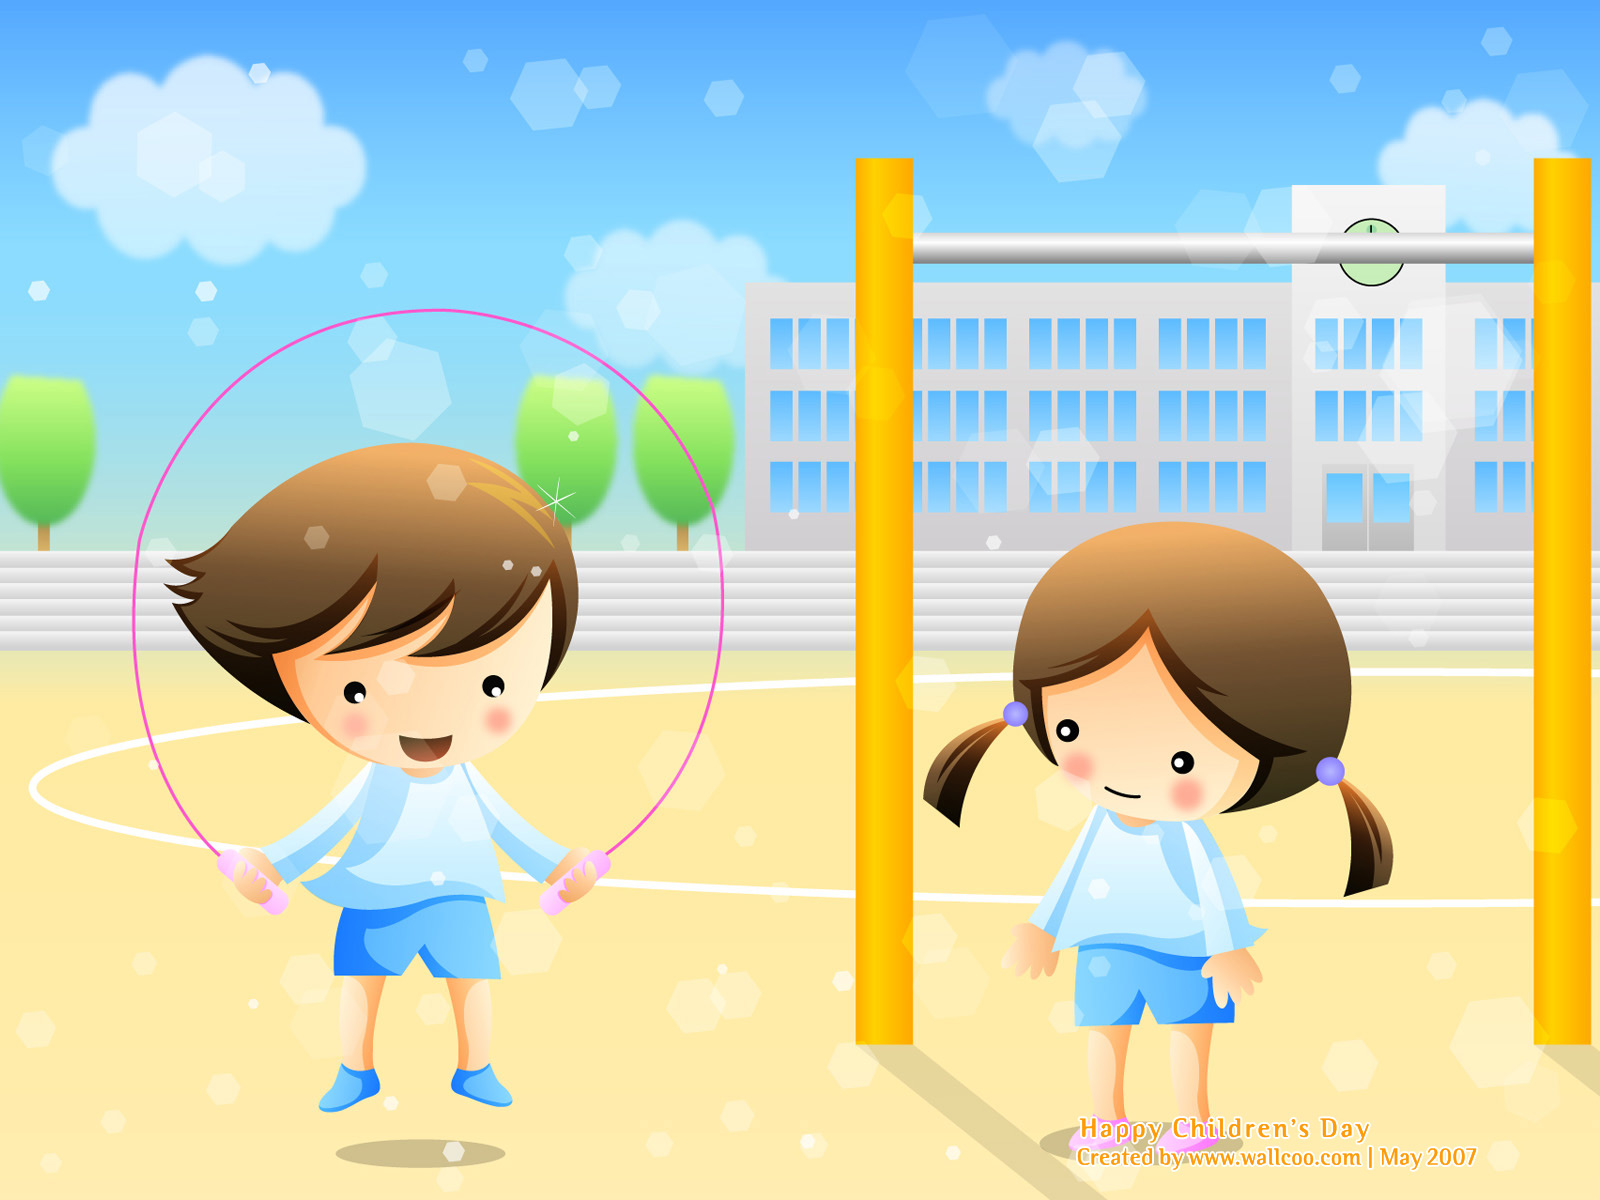 Childrens Day PowerPoint Backgrounds and Wallpapers   PPT 1600x1200